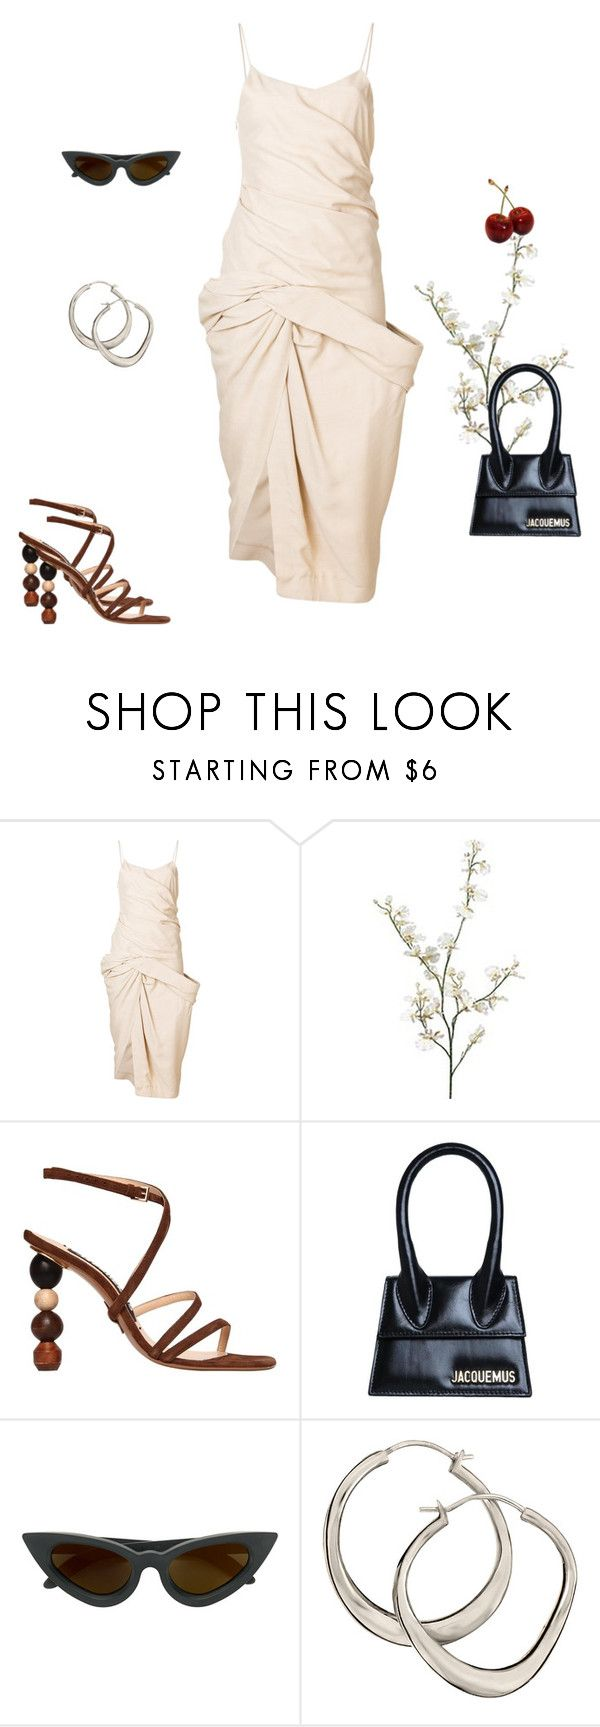 """""""Jacquemus"""" by eleonorepl ❤ liked on Polyvore featuring Jacquemus, Pier 1 Imports, Kuboraum and Dinny Hall"""